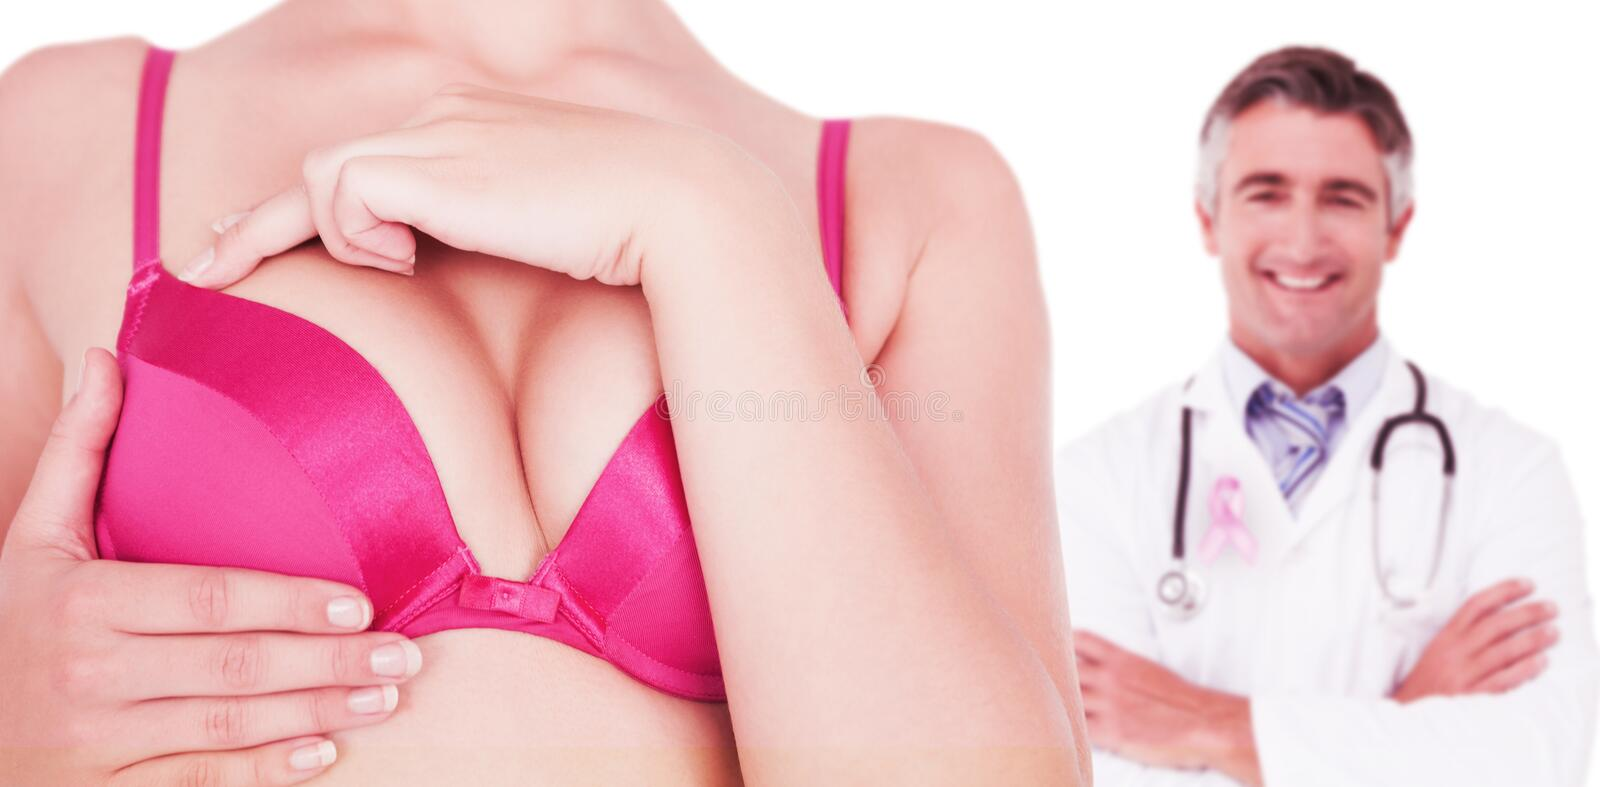 Composite image of mid section of woman in pink bra touching breast for cancer awareness stock photography